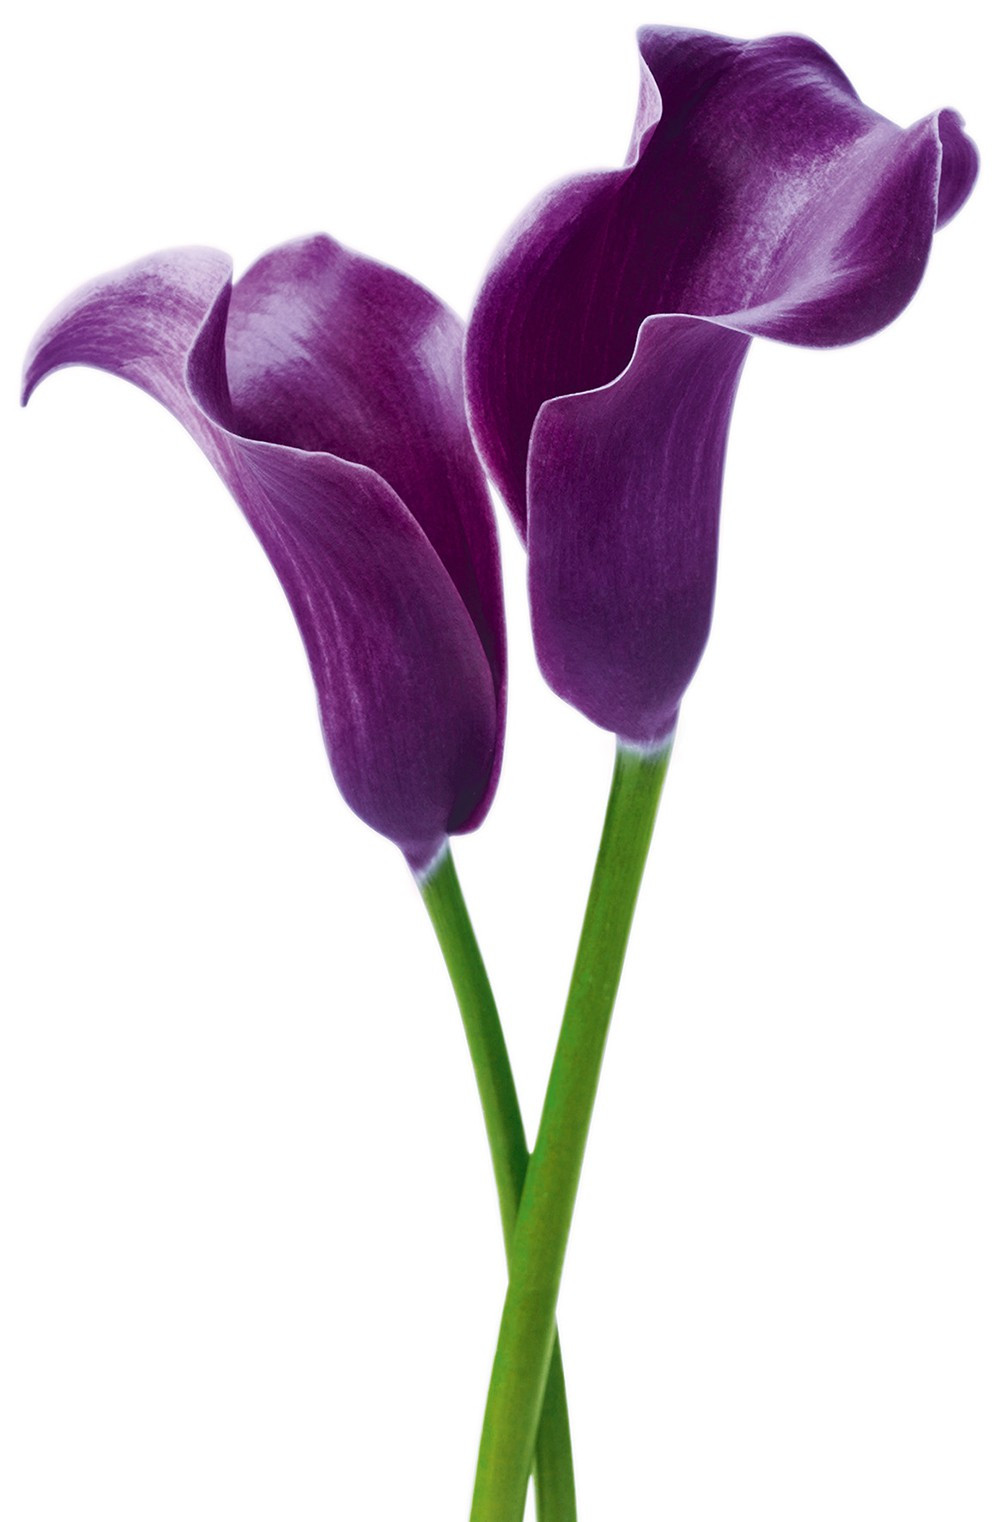 Wizard+Genius-Juliste Giant Art 00675 Purple Calla Lilies 115x175cm-2